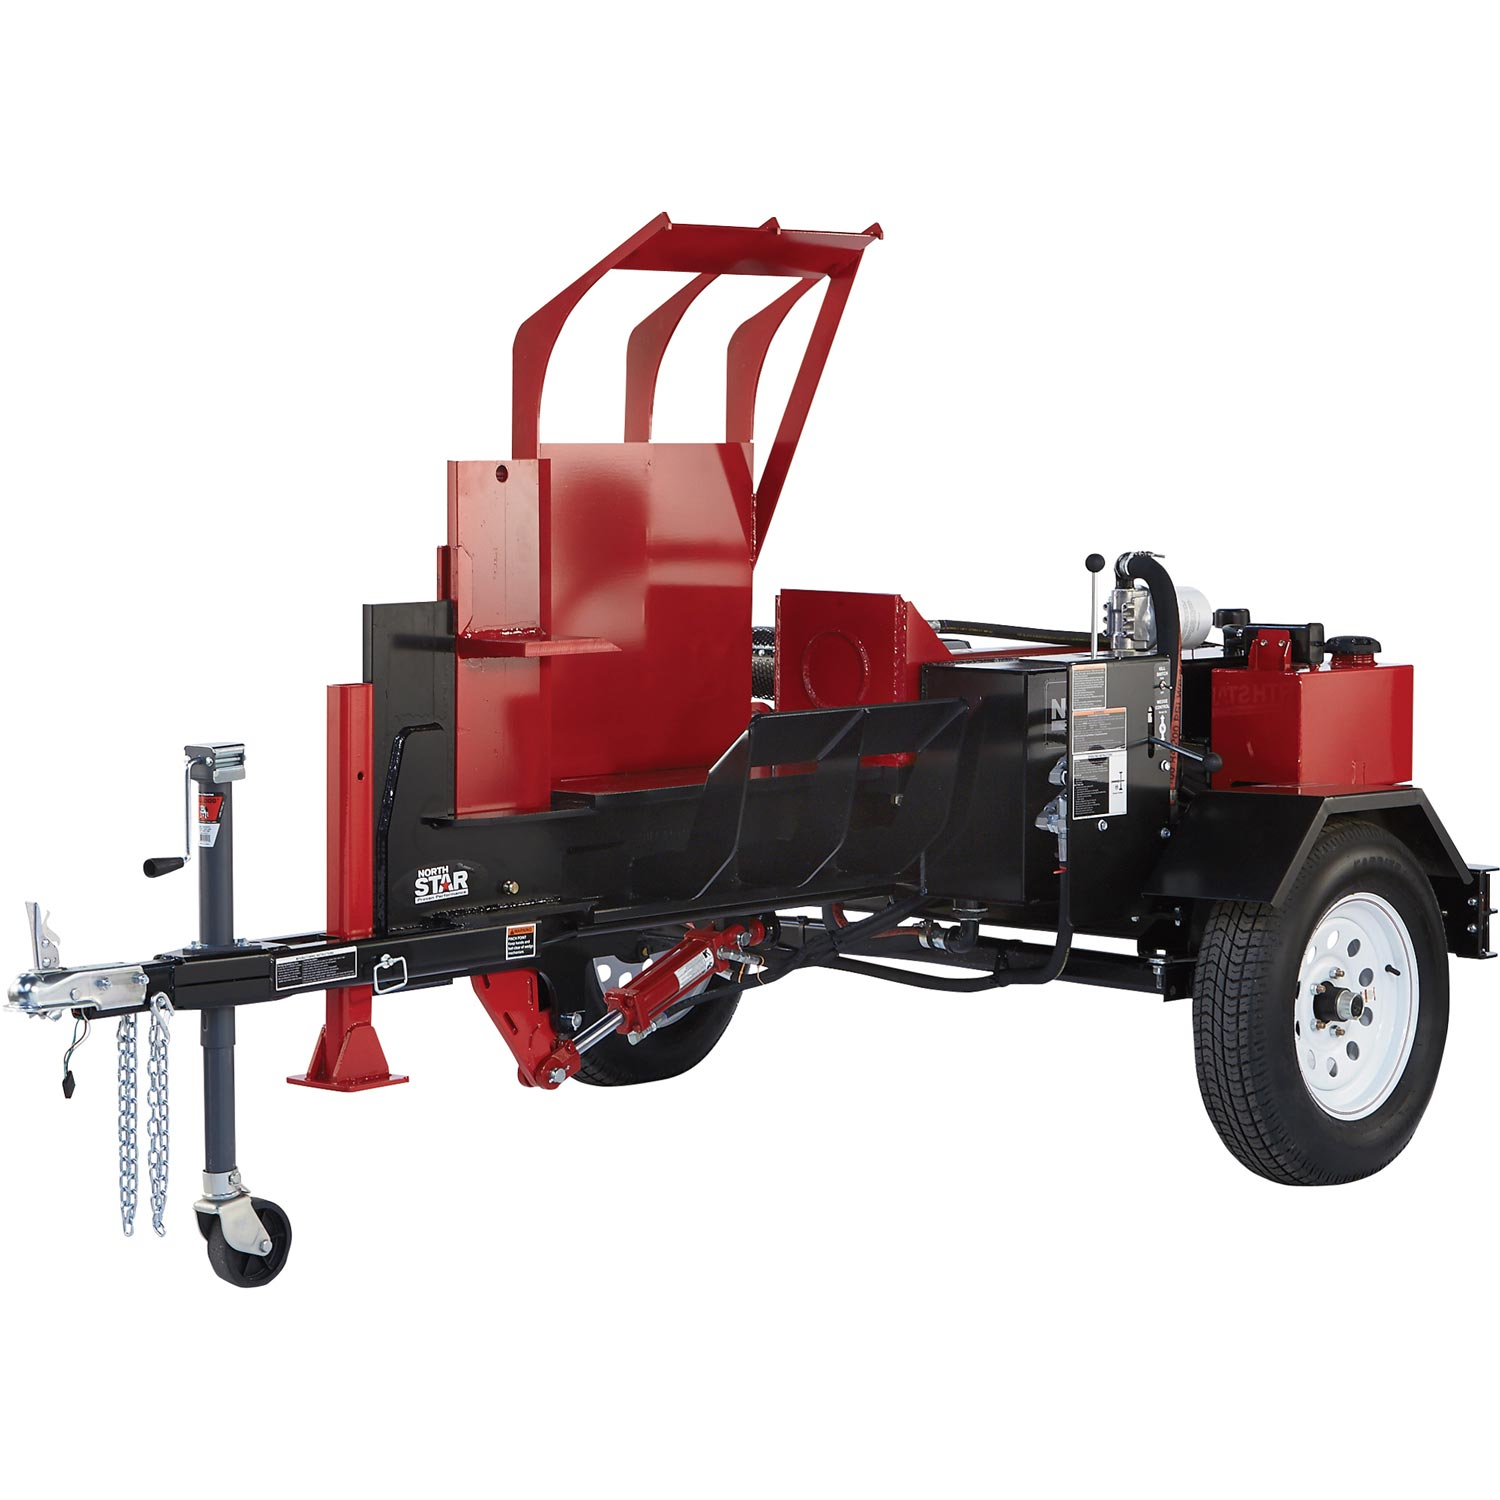 NorthStar 11967 Horizontal Log Splitter w/ Log Lift 42-Ton Honda GX630 Engine